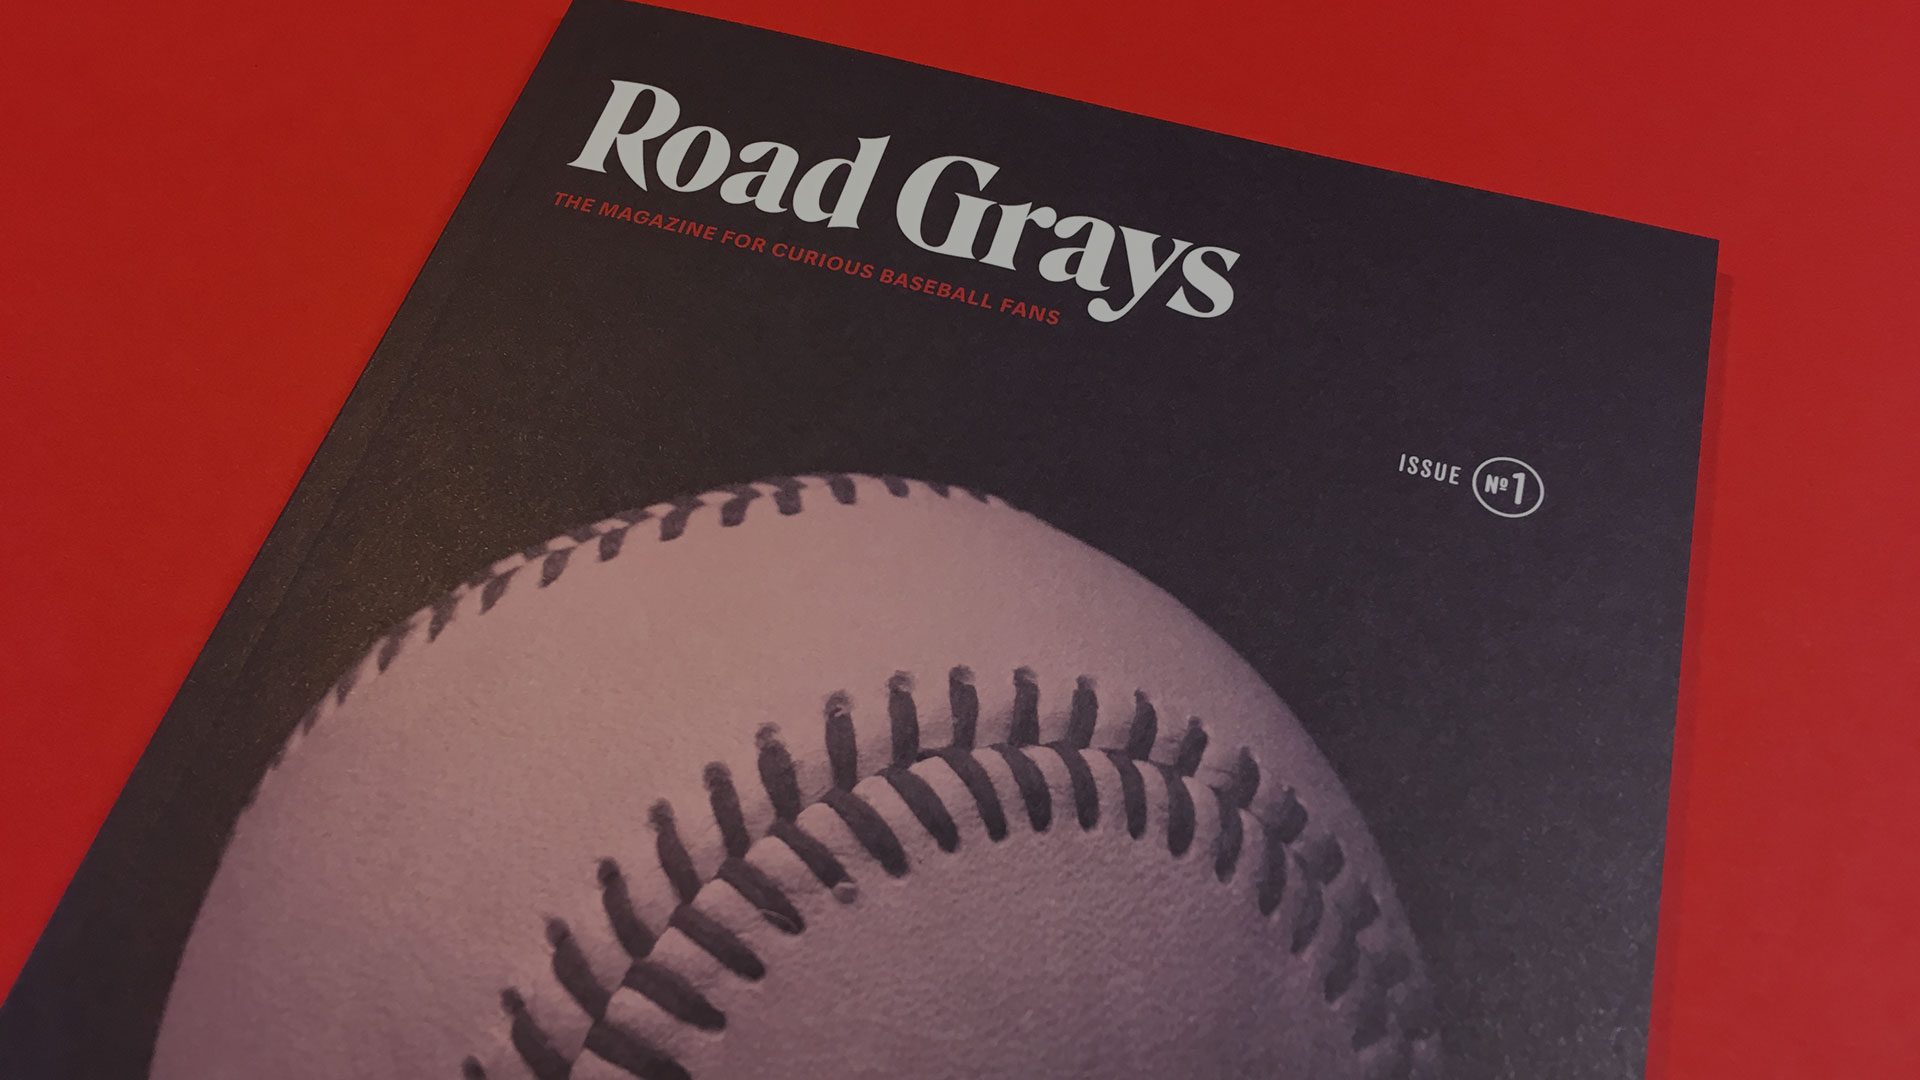 Road Grays